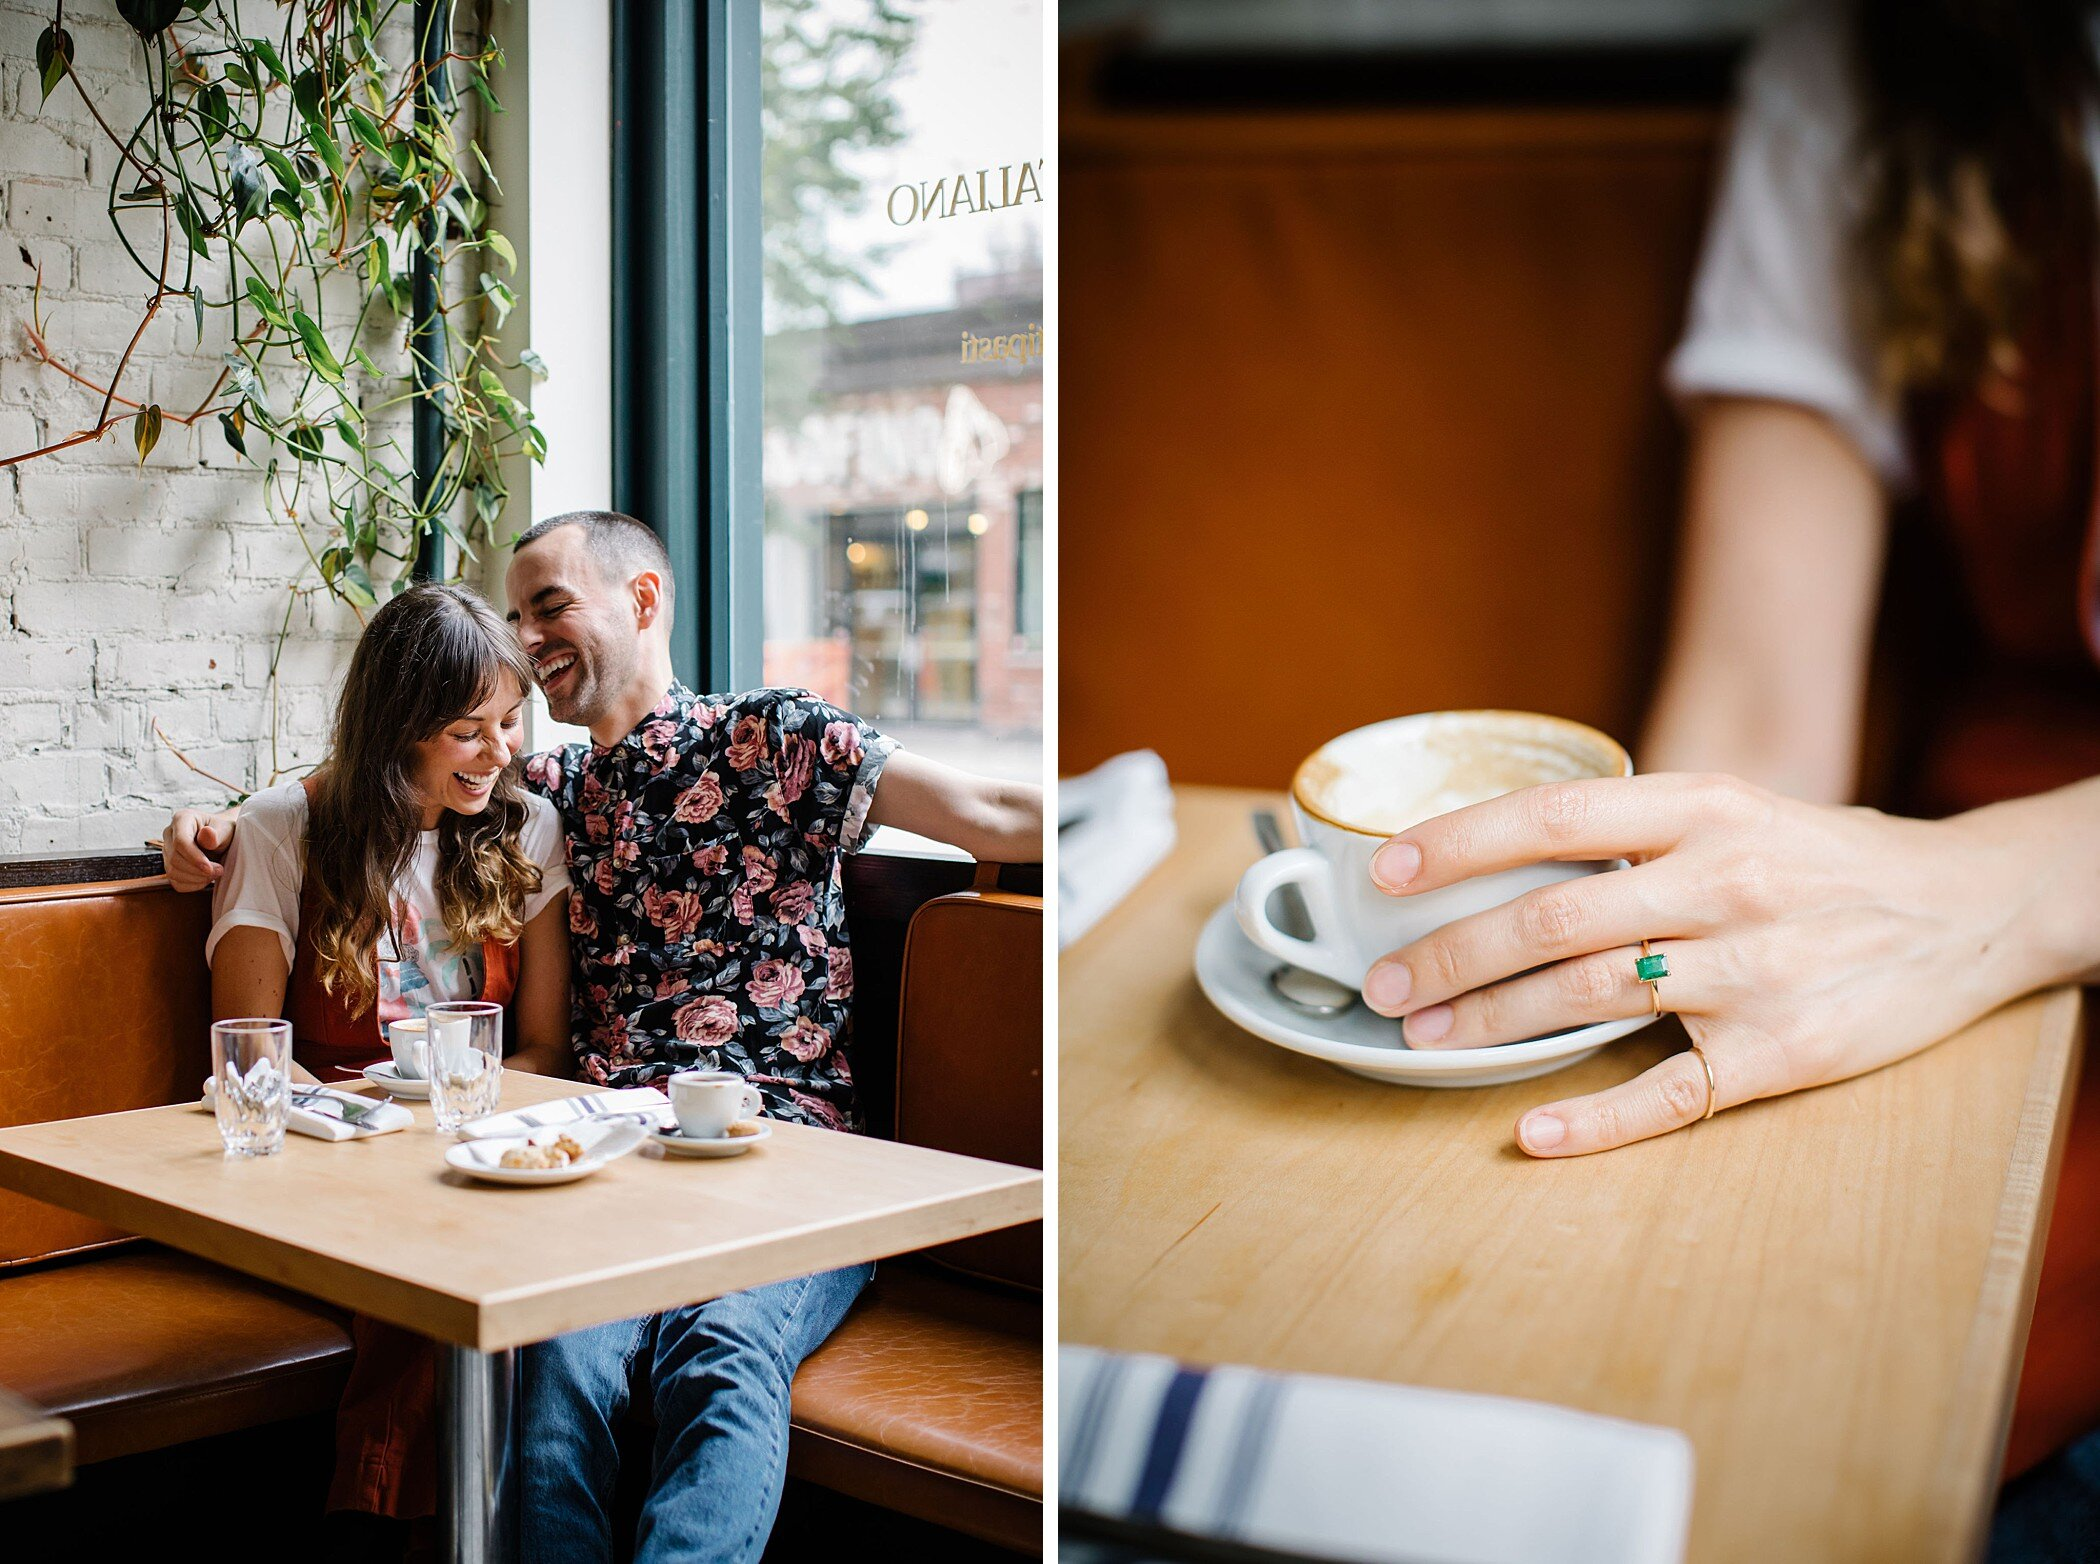 July14.DanandRo3152_Note Photography Documentary Photographer Wedding Photos Vancouver B.C. Best 2019 2020 Jericho Beach Engagement Session Gastown Di Beppe DiBeppe.jpg